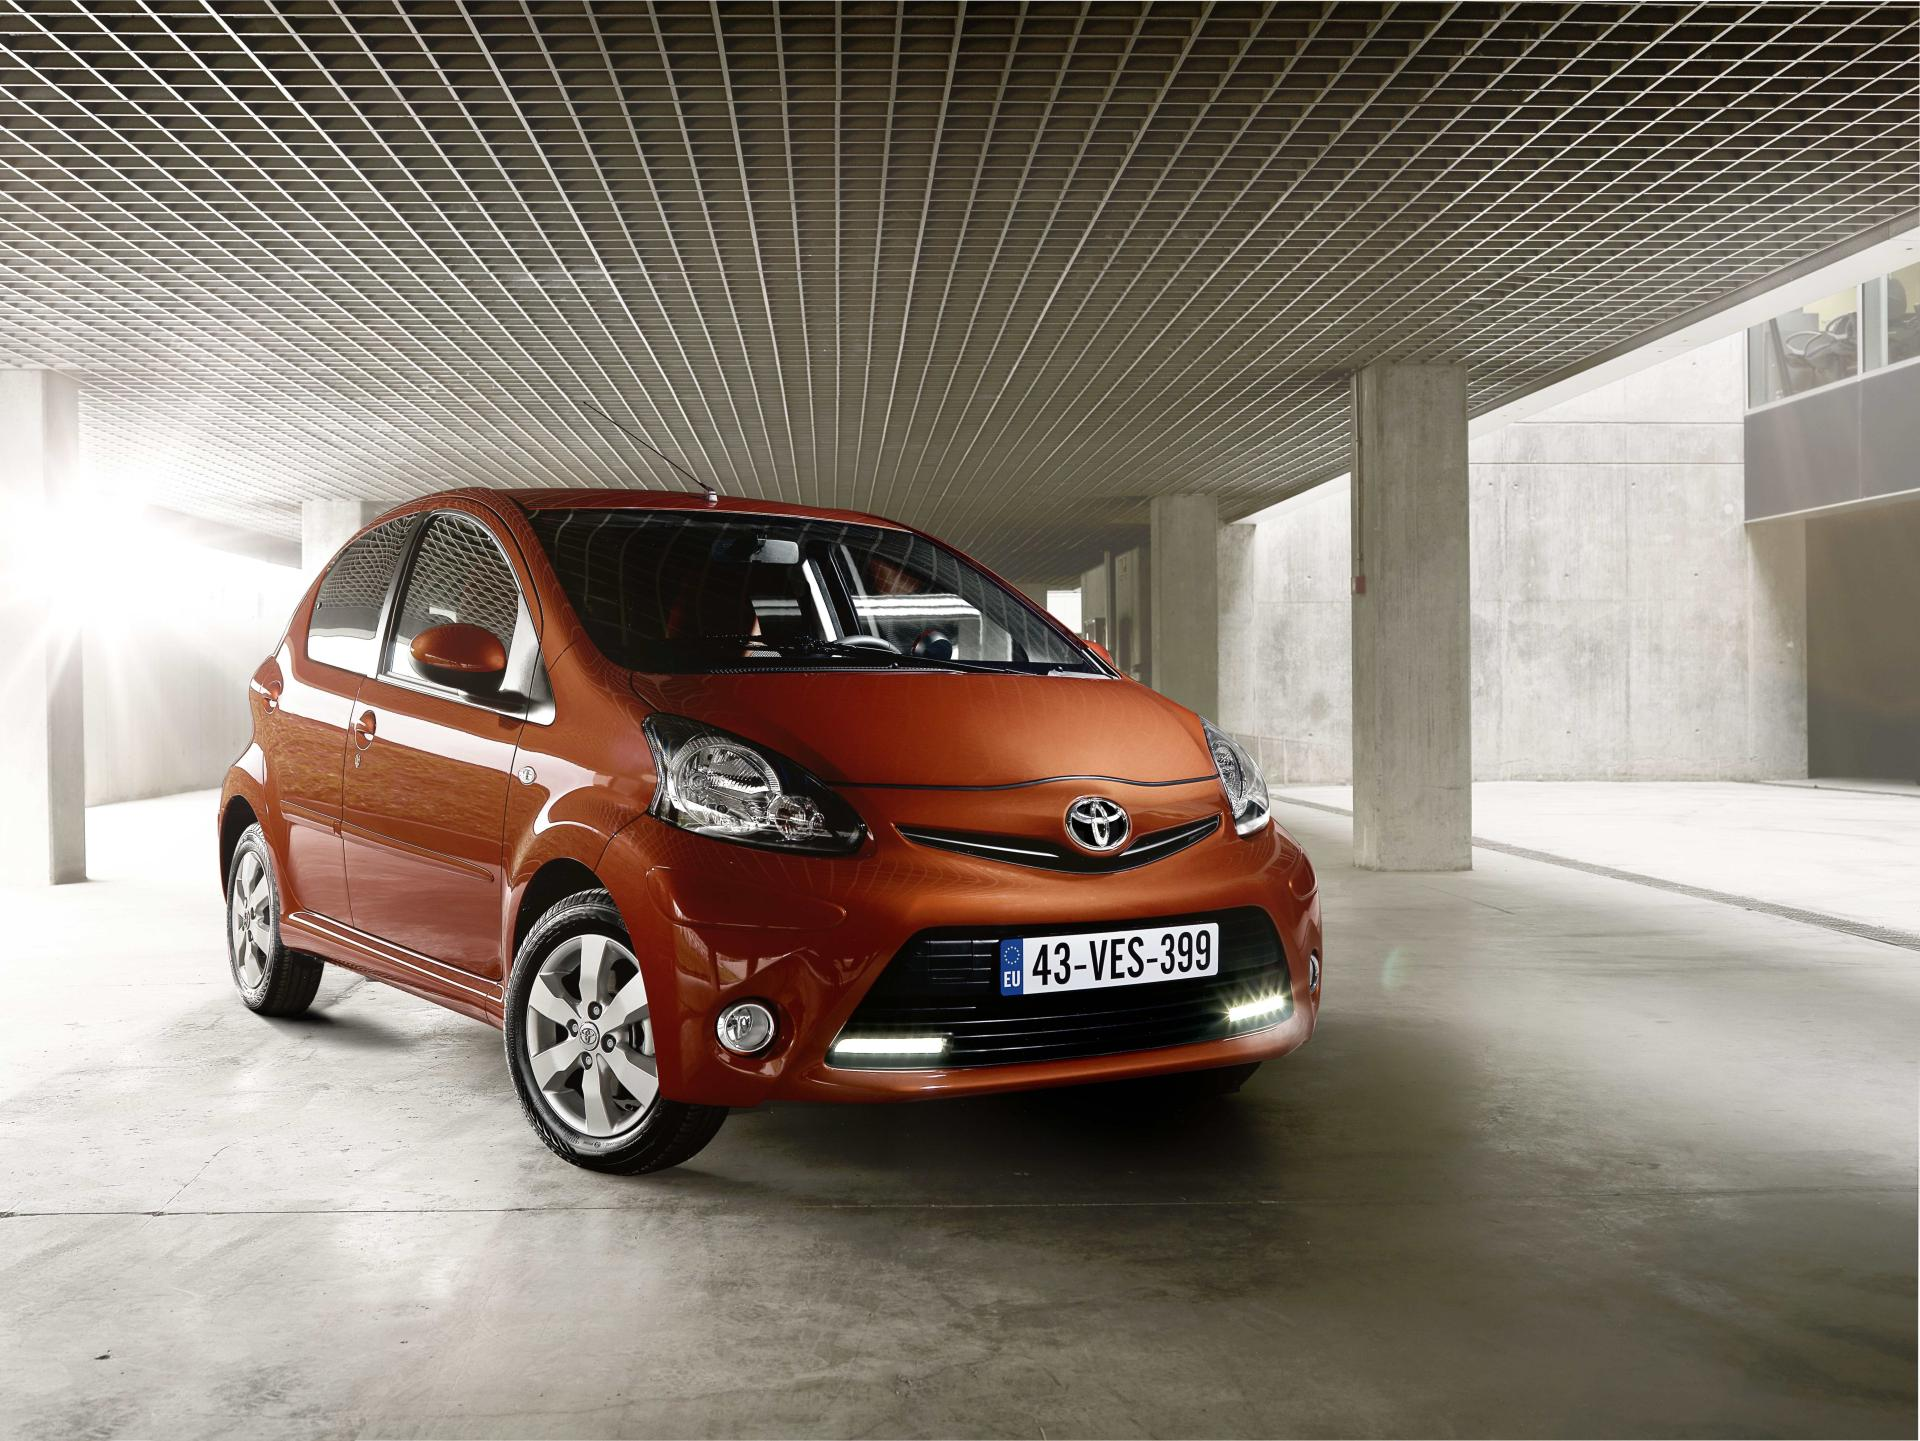 2015 toyota aygo technical specifications and data engine dimensions and mechanical details. Black Bedroom Furniture Sets. Home Design Ideas